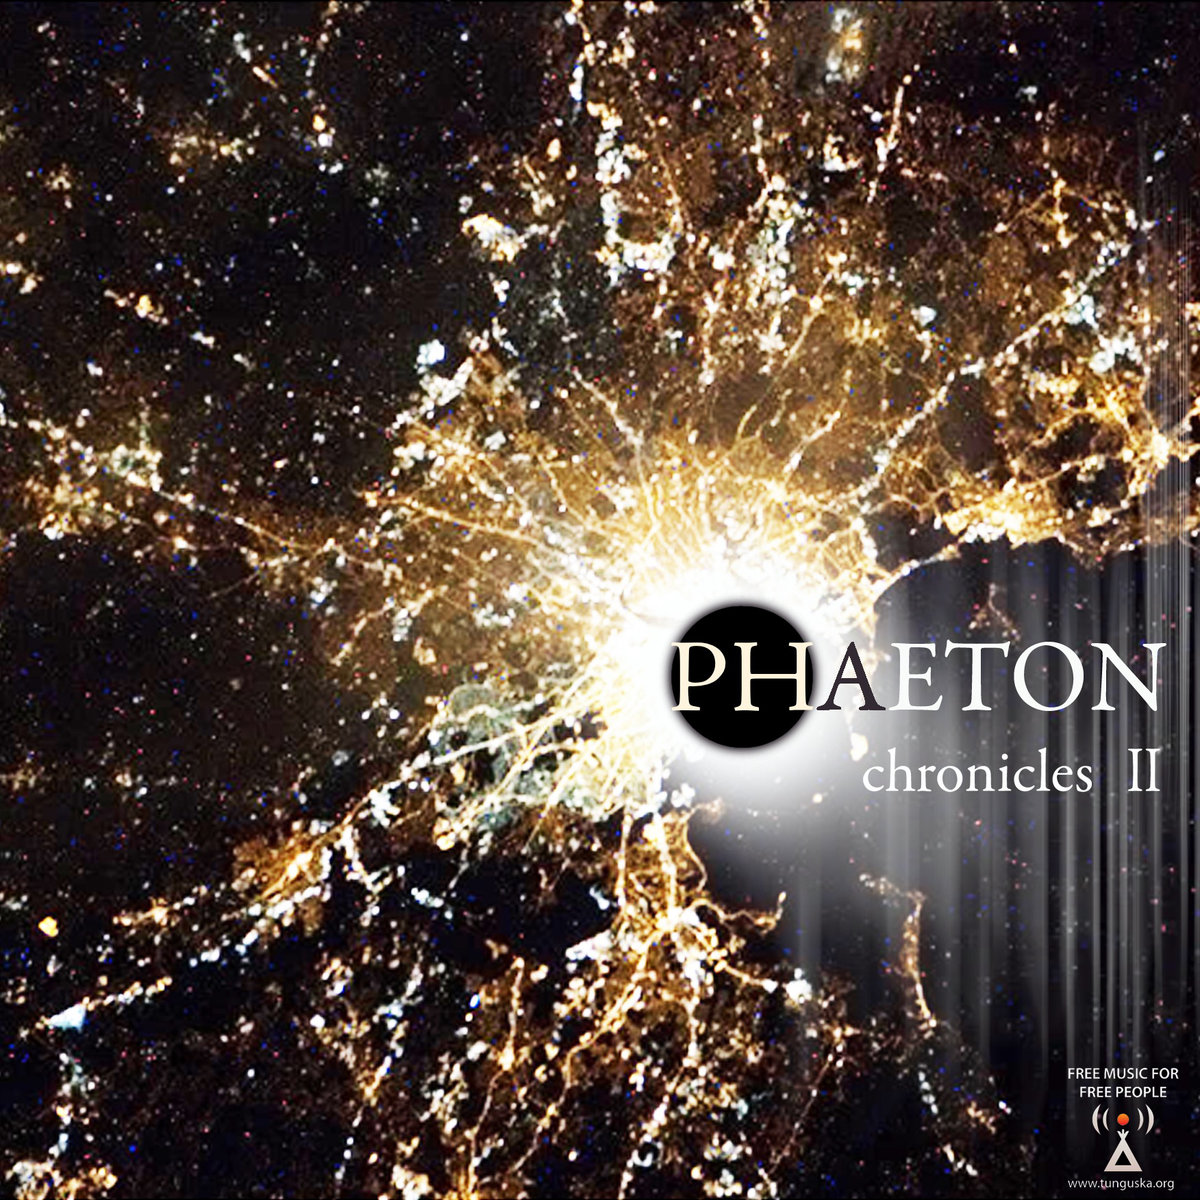 Medkit - 0f s01itud3 and b0und13sn3ss @ 'Phaeton Chronicles - Volume 2' album (electronic, abstract electronic)